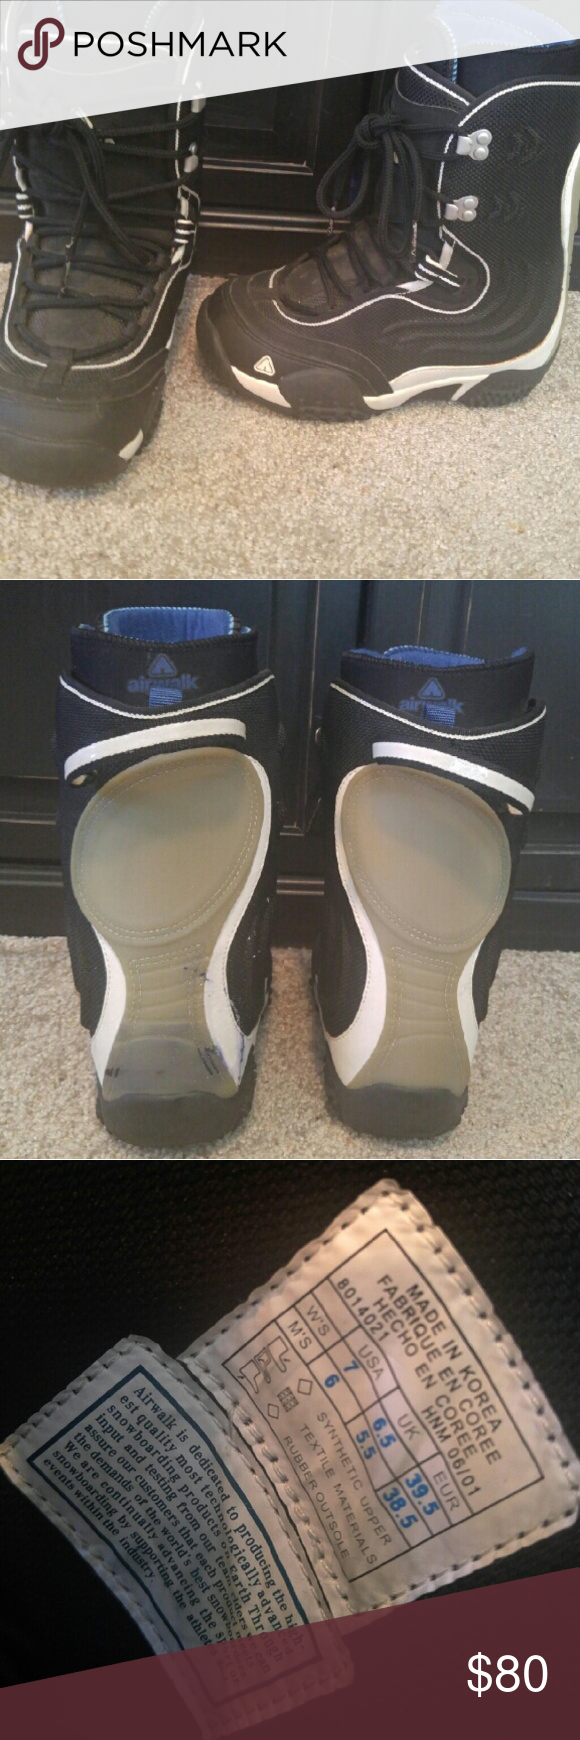 Airwalk Snowboard Boots Woman's size 7 snowboard boots. Stain on back of right boot is fingernail polish. Airwalk Shoes Winter & Rain Boots